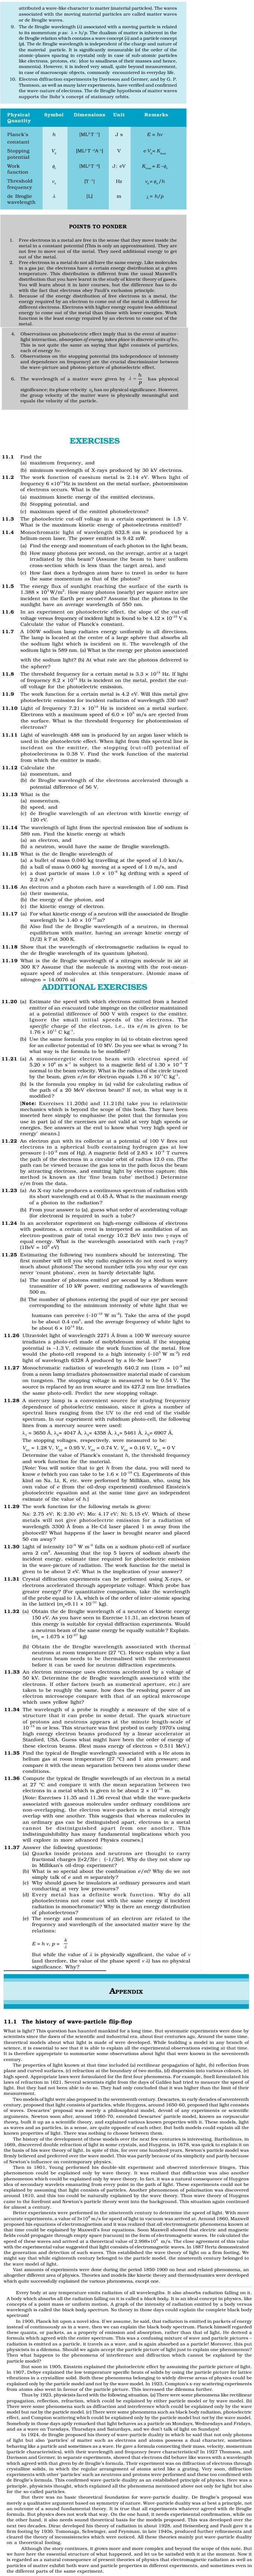 NCERT Class XII Physics Chapter 11 - Dual Nature of Radiation and Matter